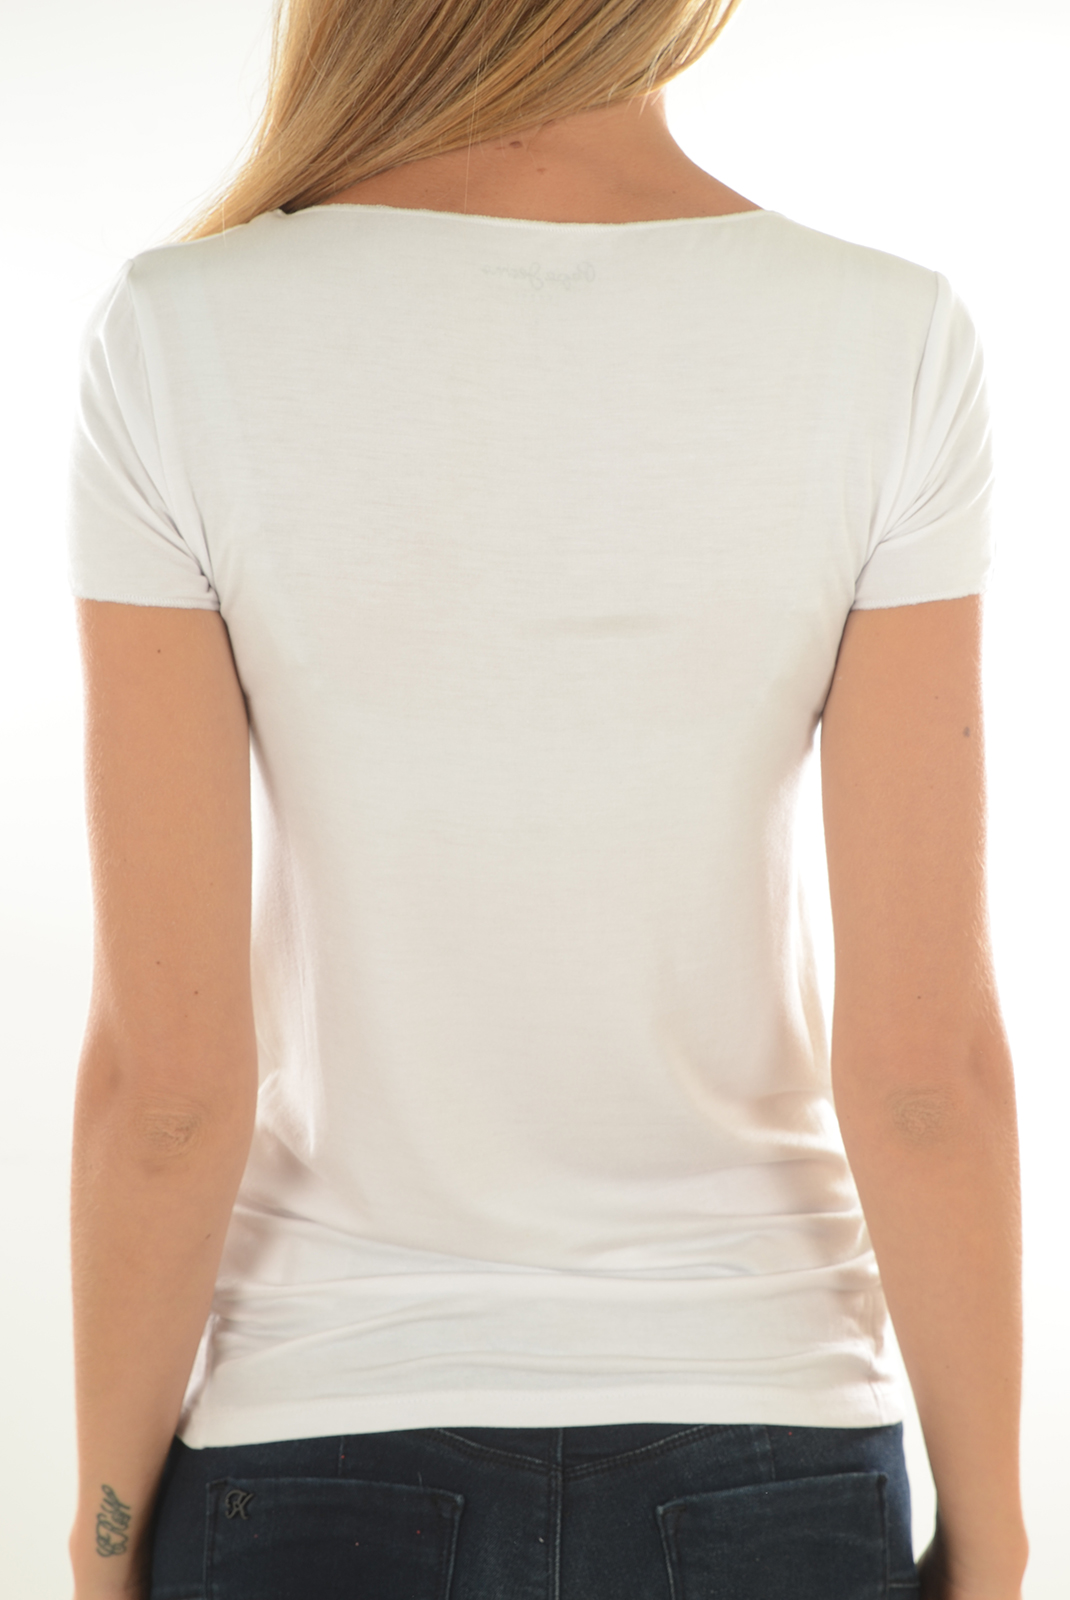 Tops & Tee shirts  Pepe jeans PL502568 KATE 803 OFF WHITE